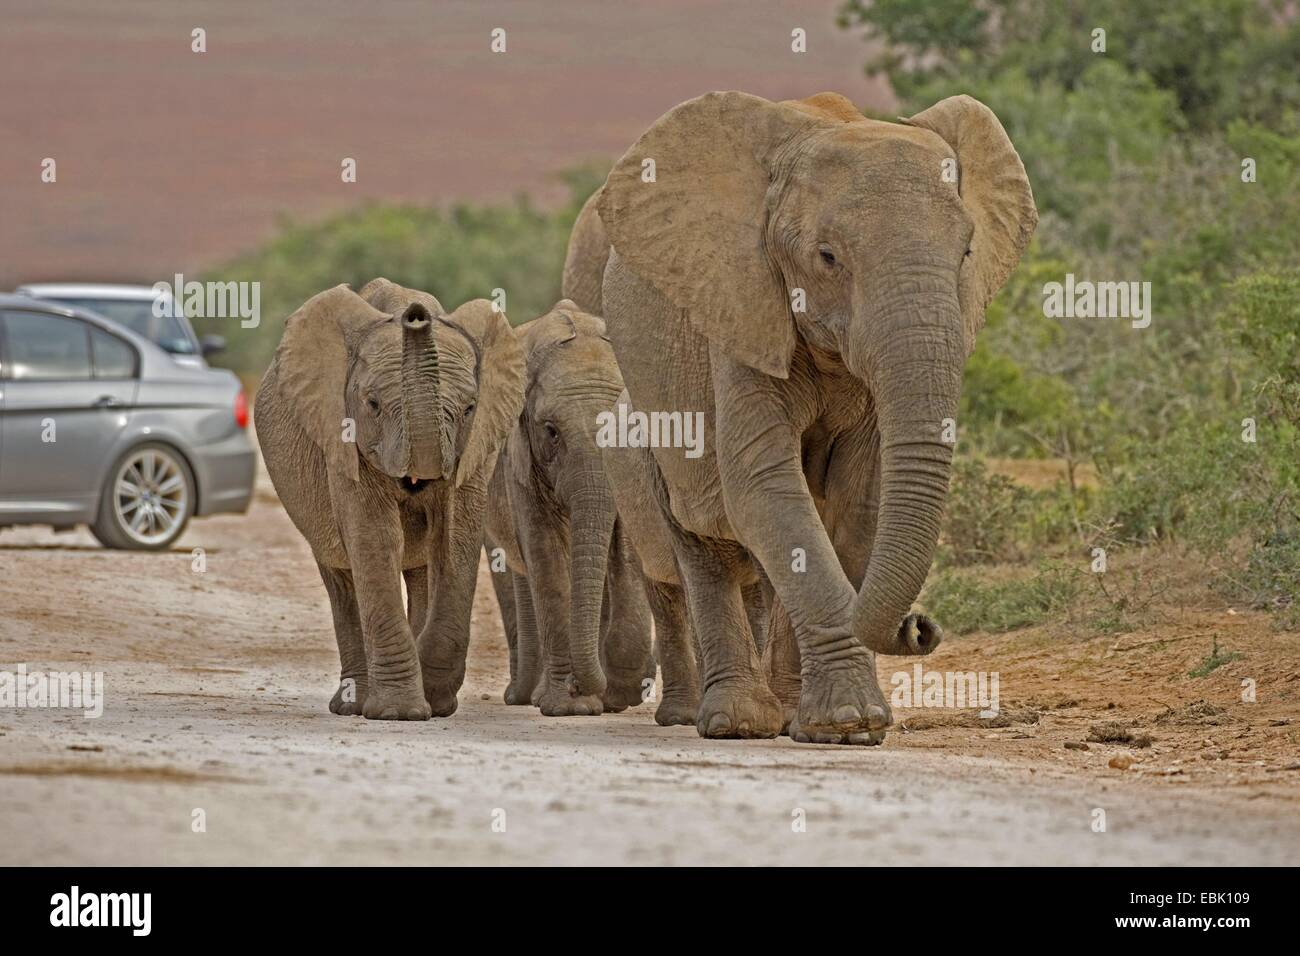 African elephant (Loxodonta africana), family on gravel road with cars, South Africa, Eastern Cape, Addo Elephant - Stock Image